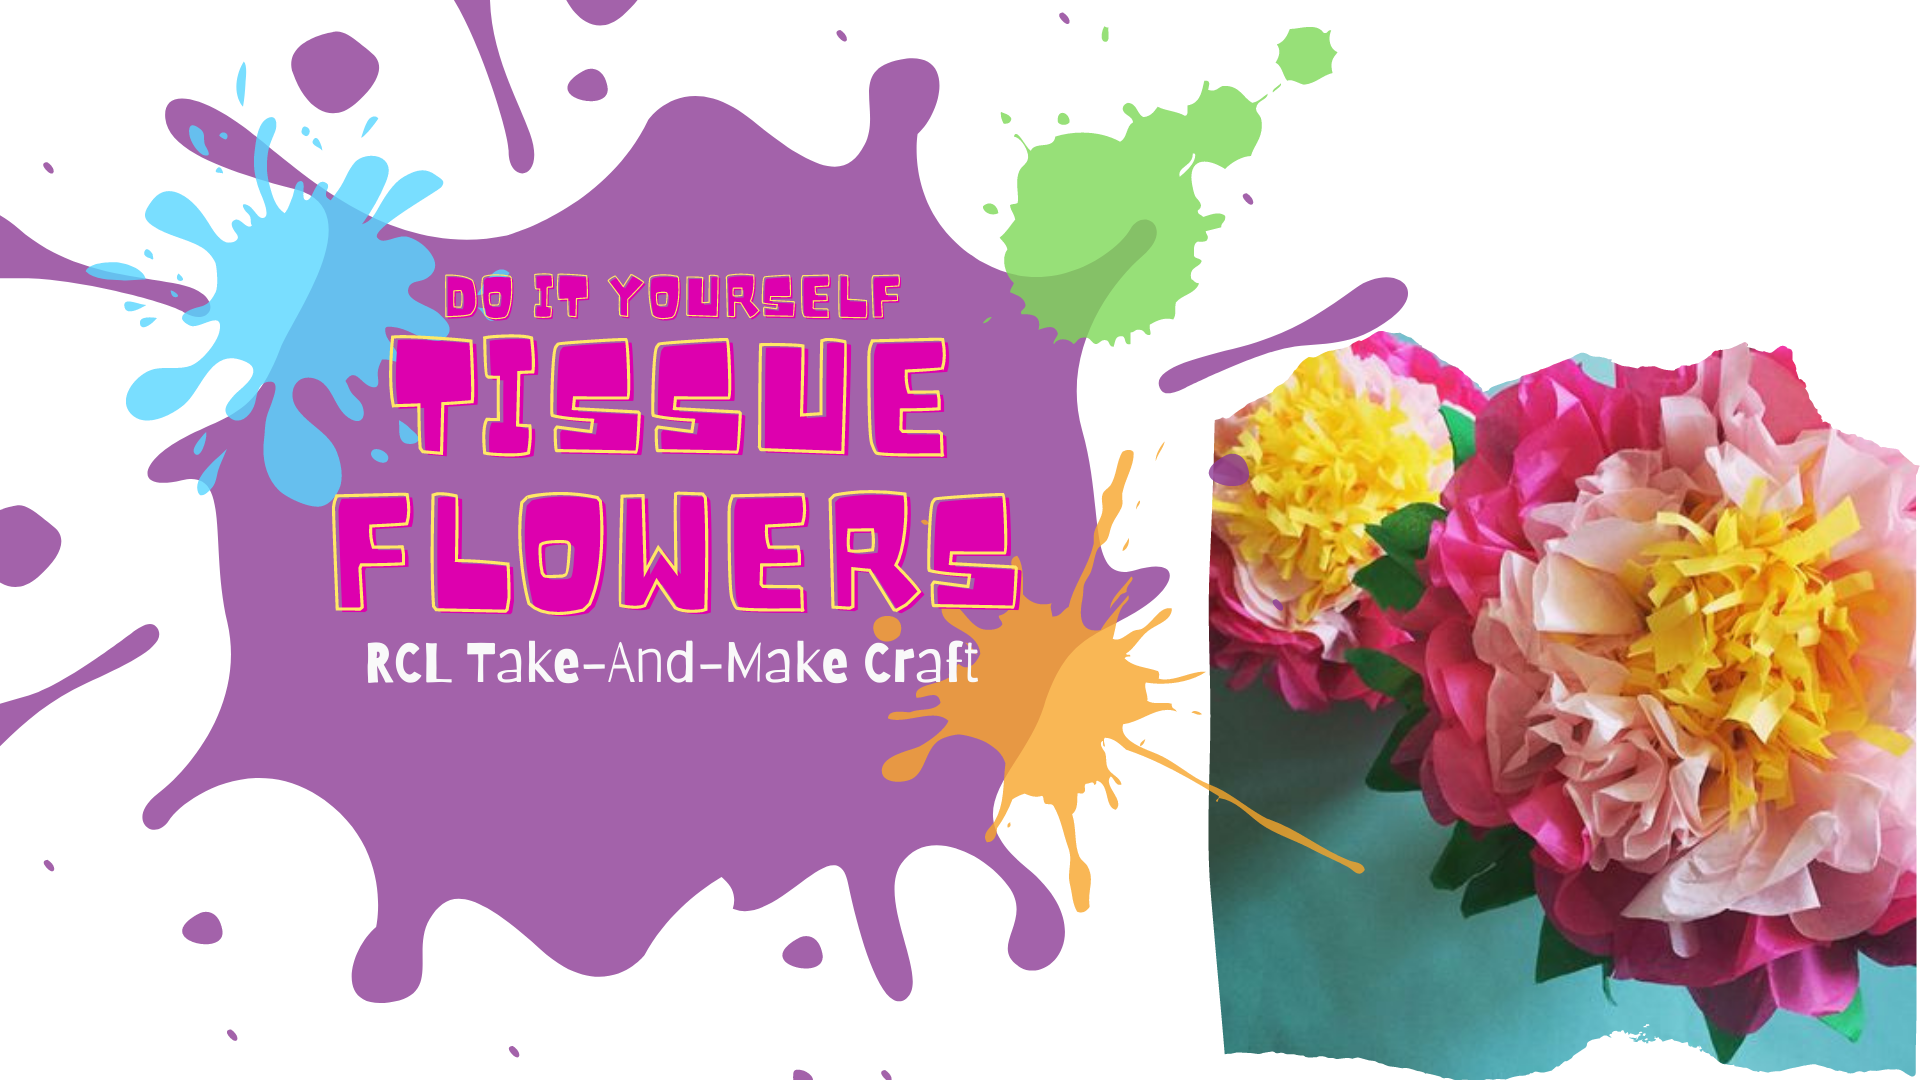 Take-And-Make Craft: Tissue Flowers